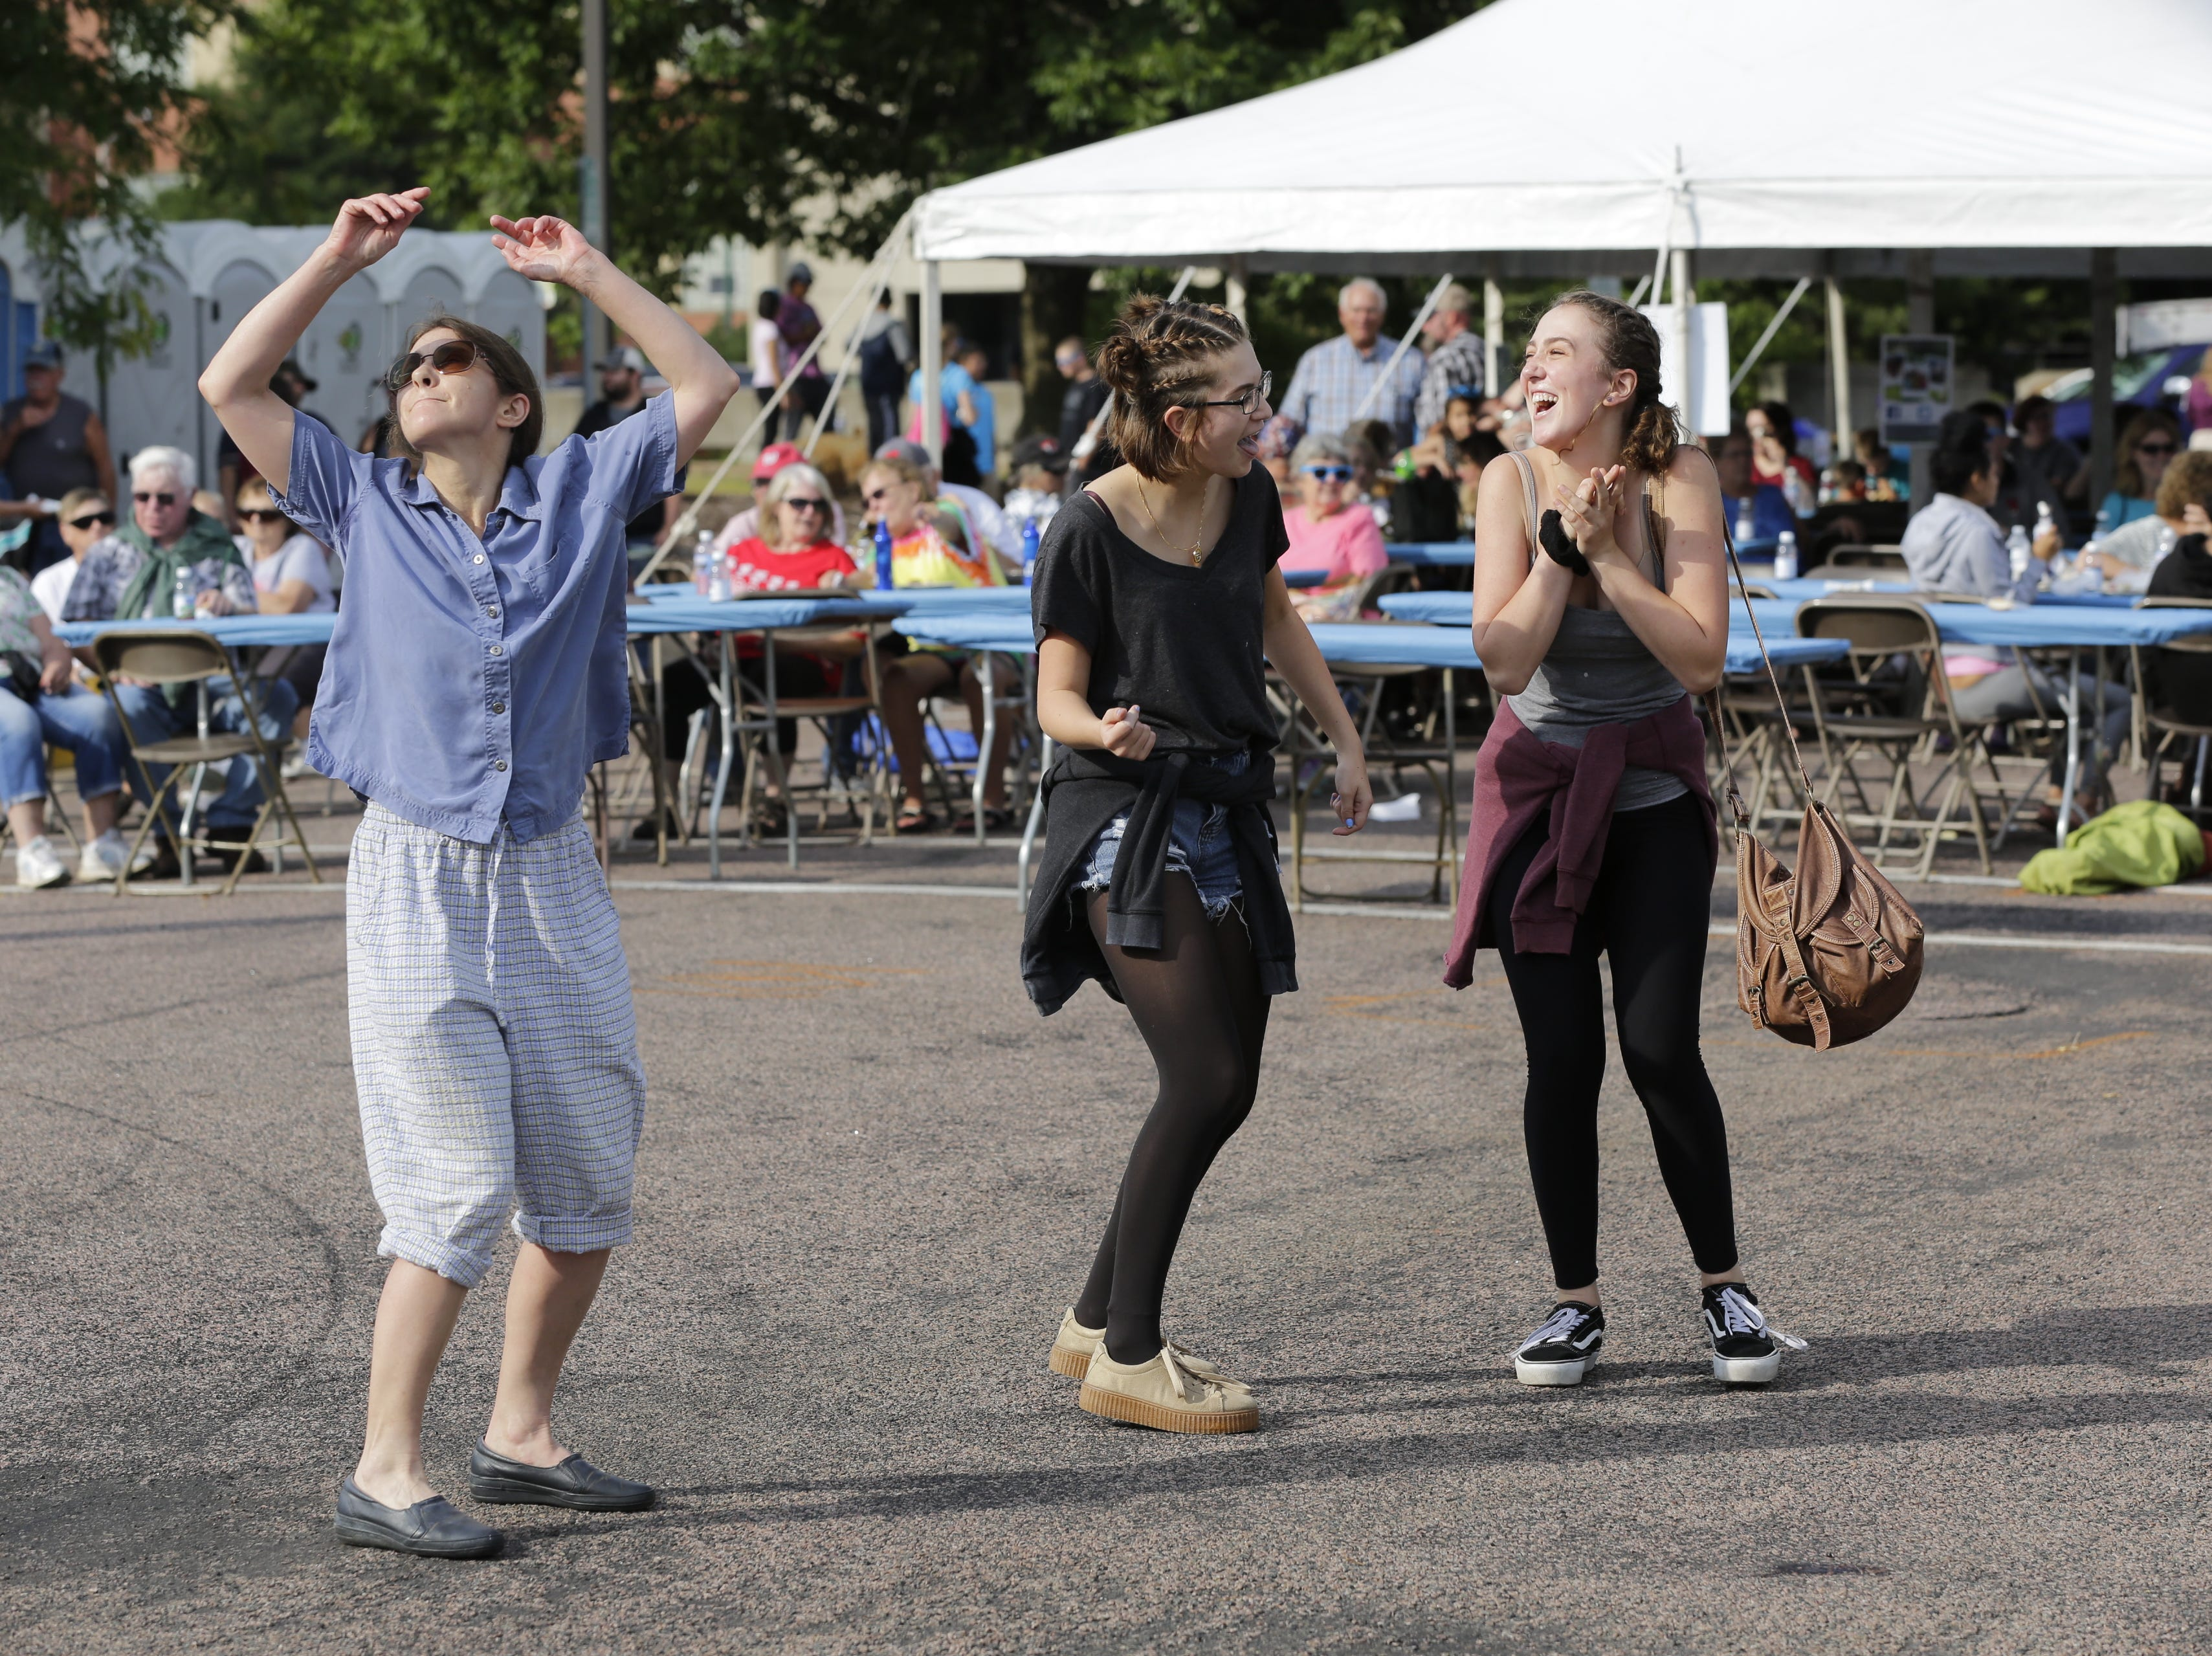 Violet Gutowski, left, Allison Braun, 17 and Lydia Page, 17, dance to the band Southbound at the Wisconsin Rapids community picnic on First Avenue South and Johnson Street Wednesday, August 1, 2018.